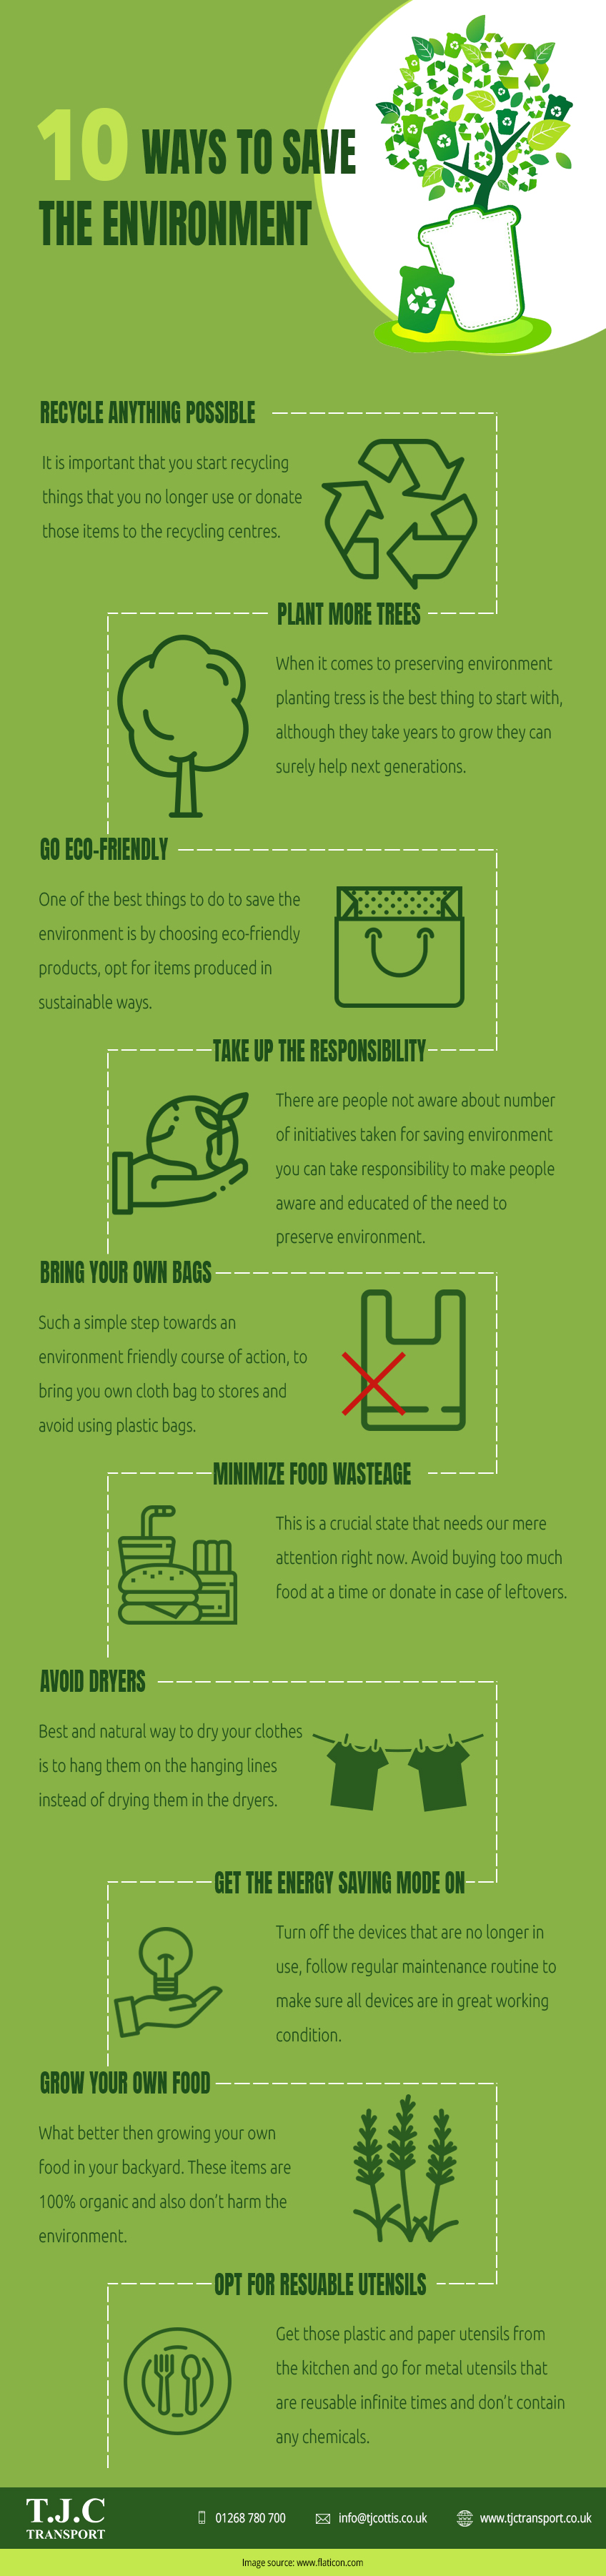 10_ways_to_save_the_environment